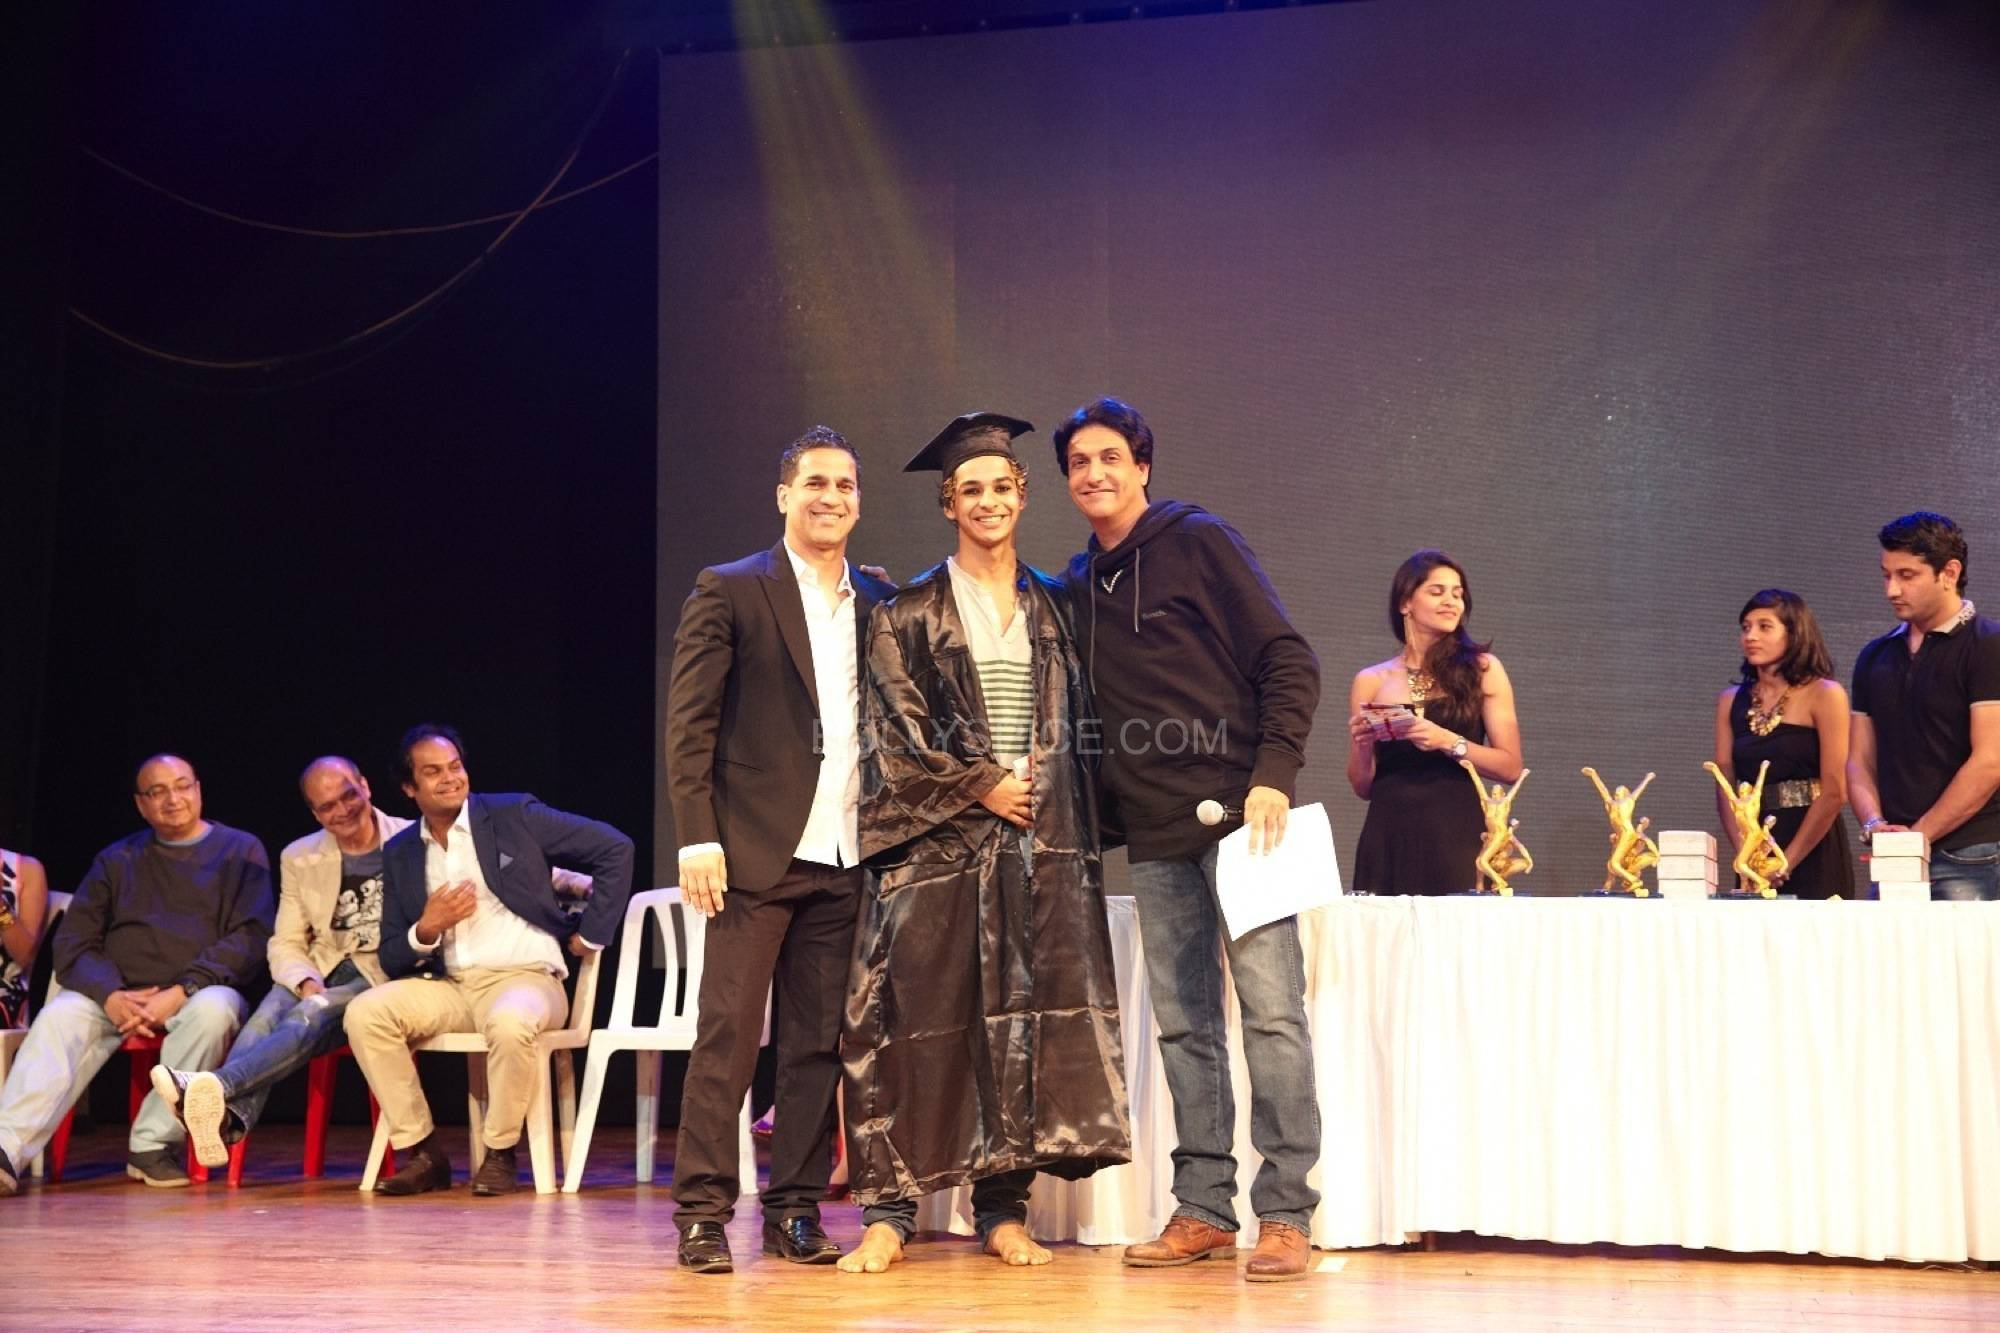 shahidshiamak1 Shahid and Shahids Brother Ishaan Named Shiamaks Most Promising Students